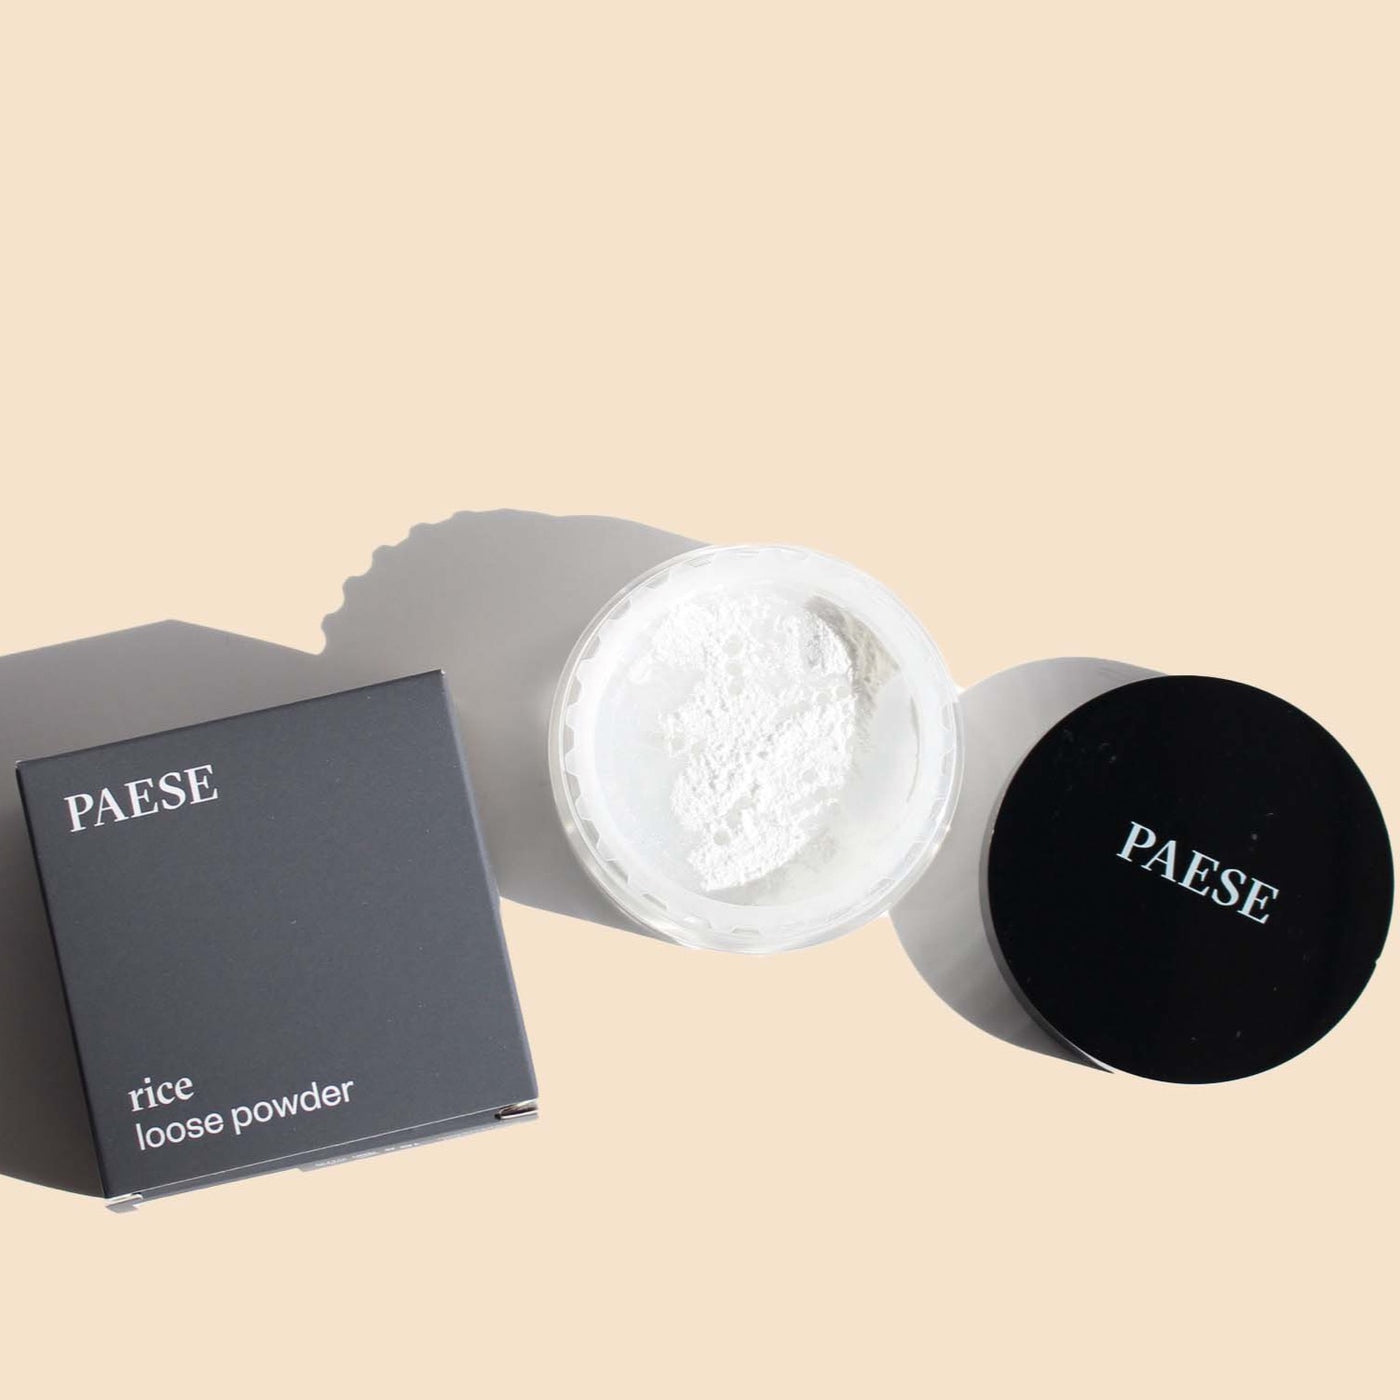 PAESE - Rice Powder